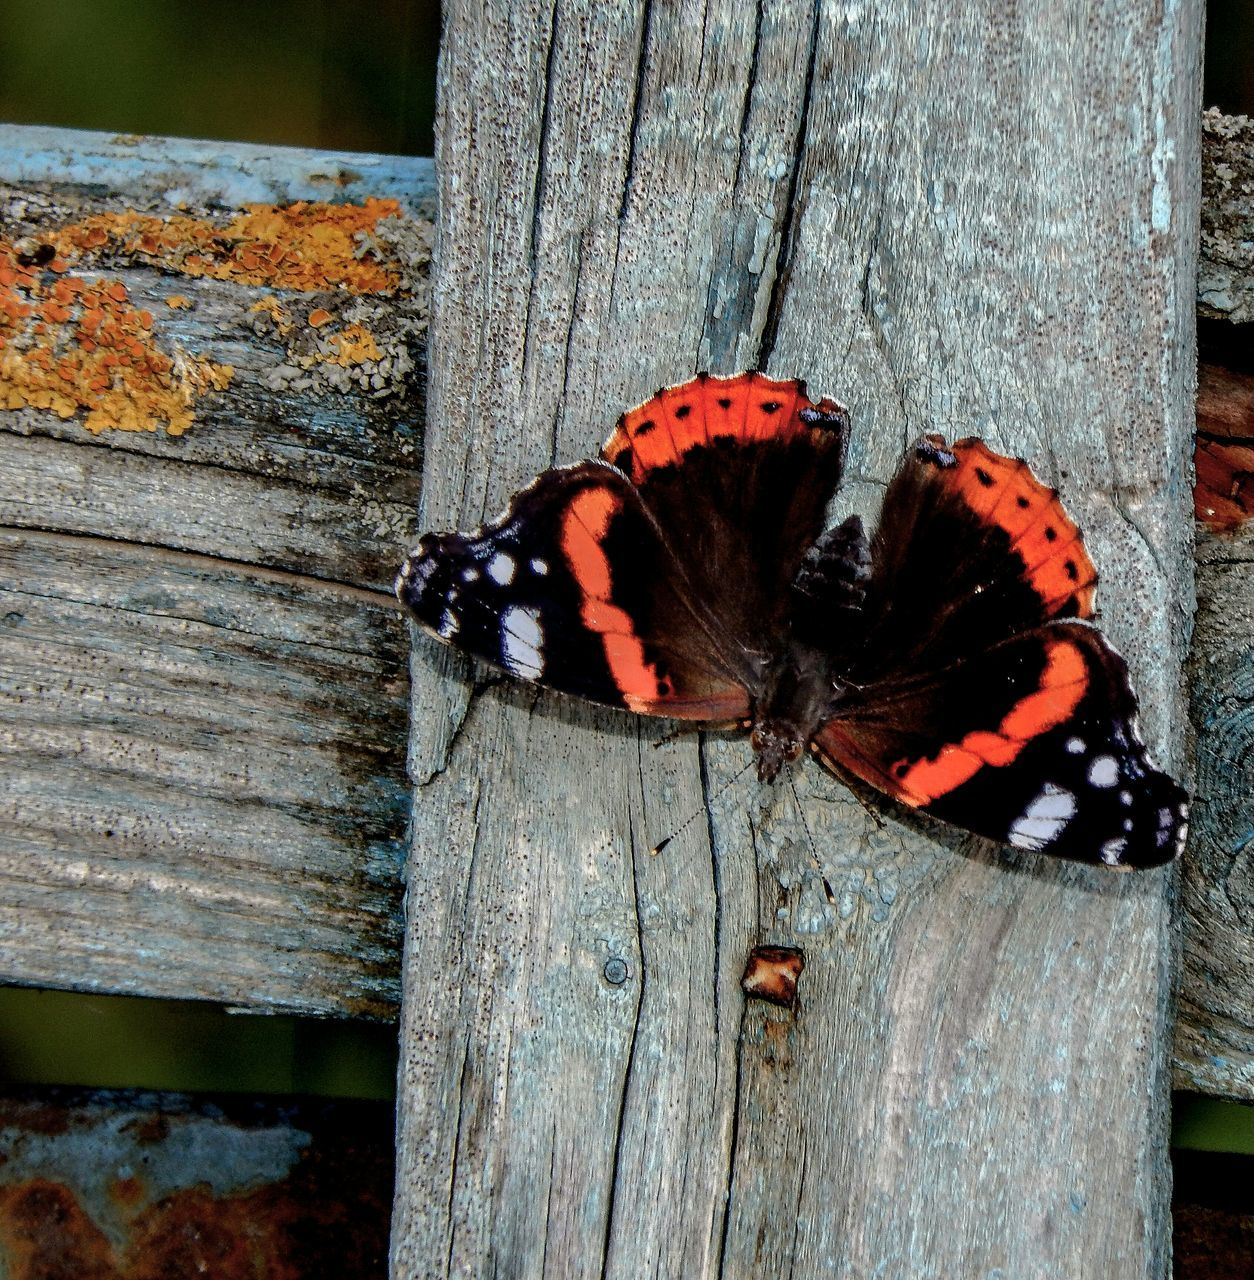 High Angle View Of Butterfly On Wooden Plank